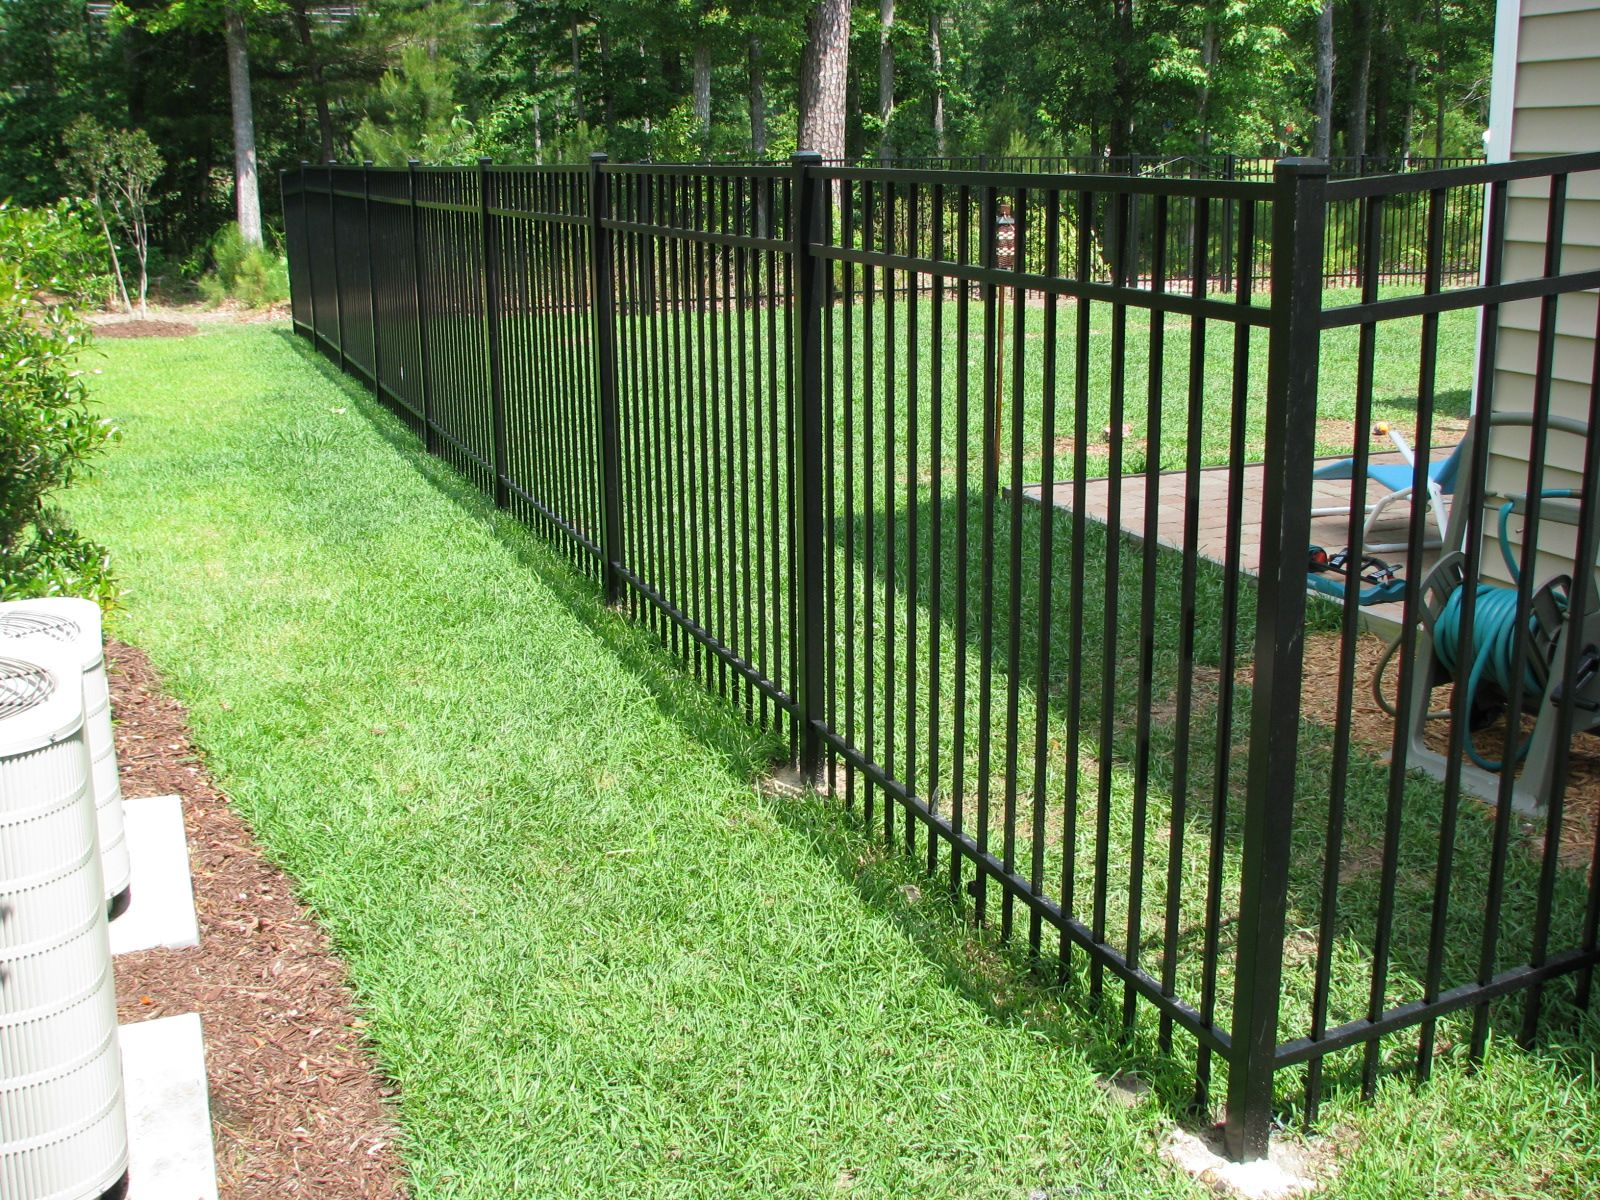 Dog Yard Ideas Yard Dog Fence Dog Yard Fence Temporary Dog Fence Ideas Best Dog  Fence Yard Dog Dog Yard Landscaping Ideas